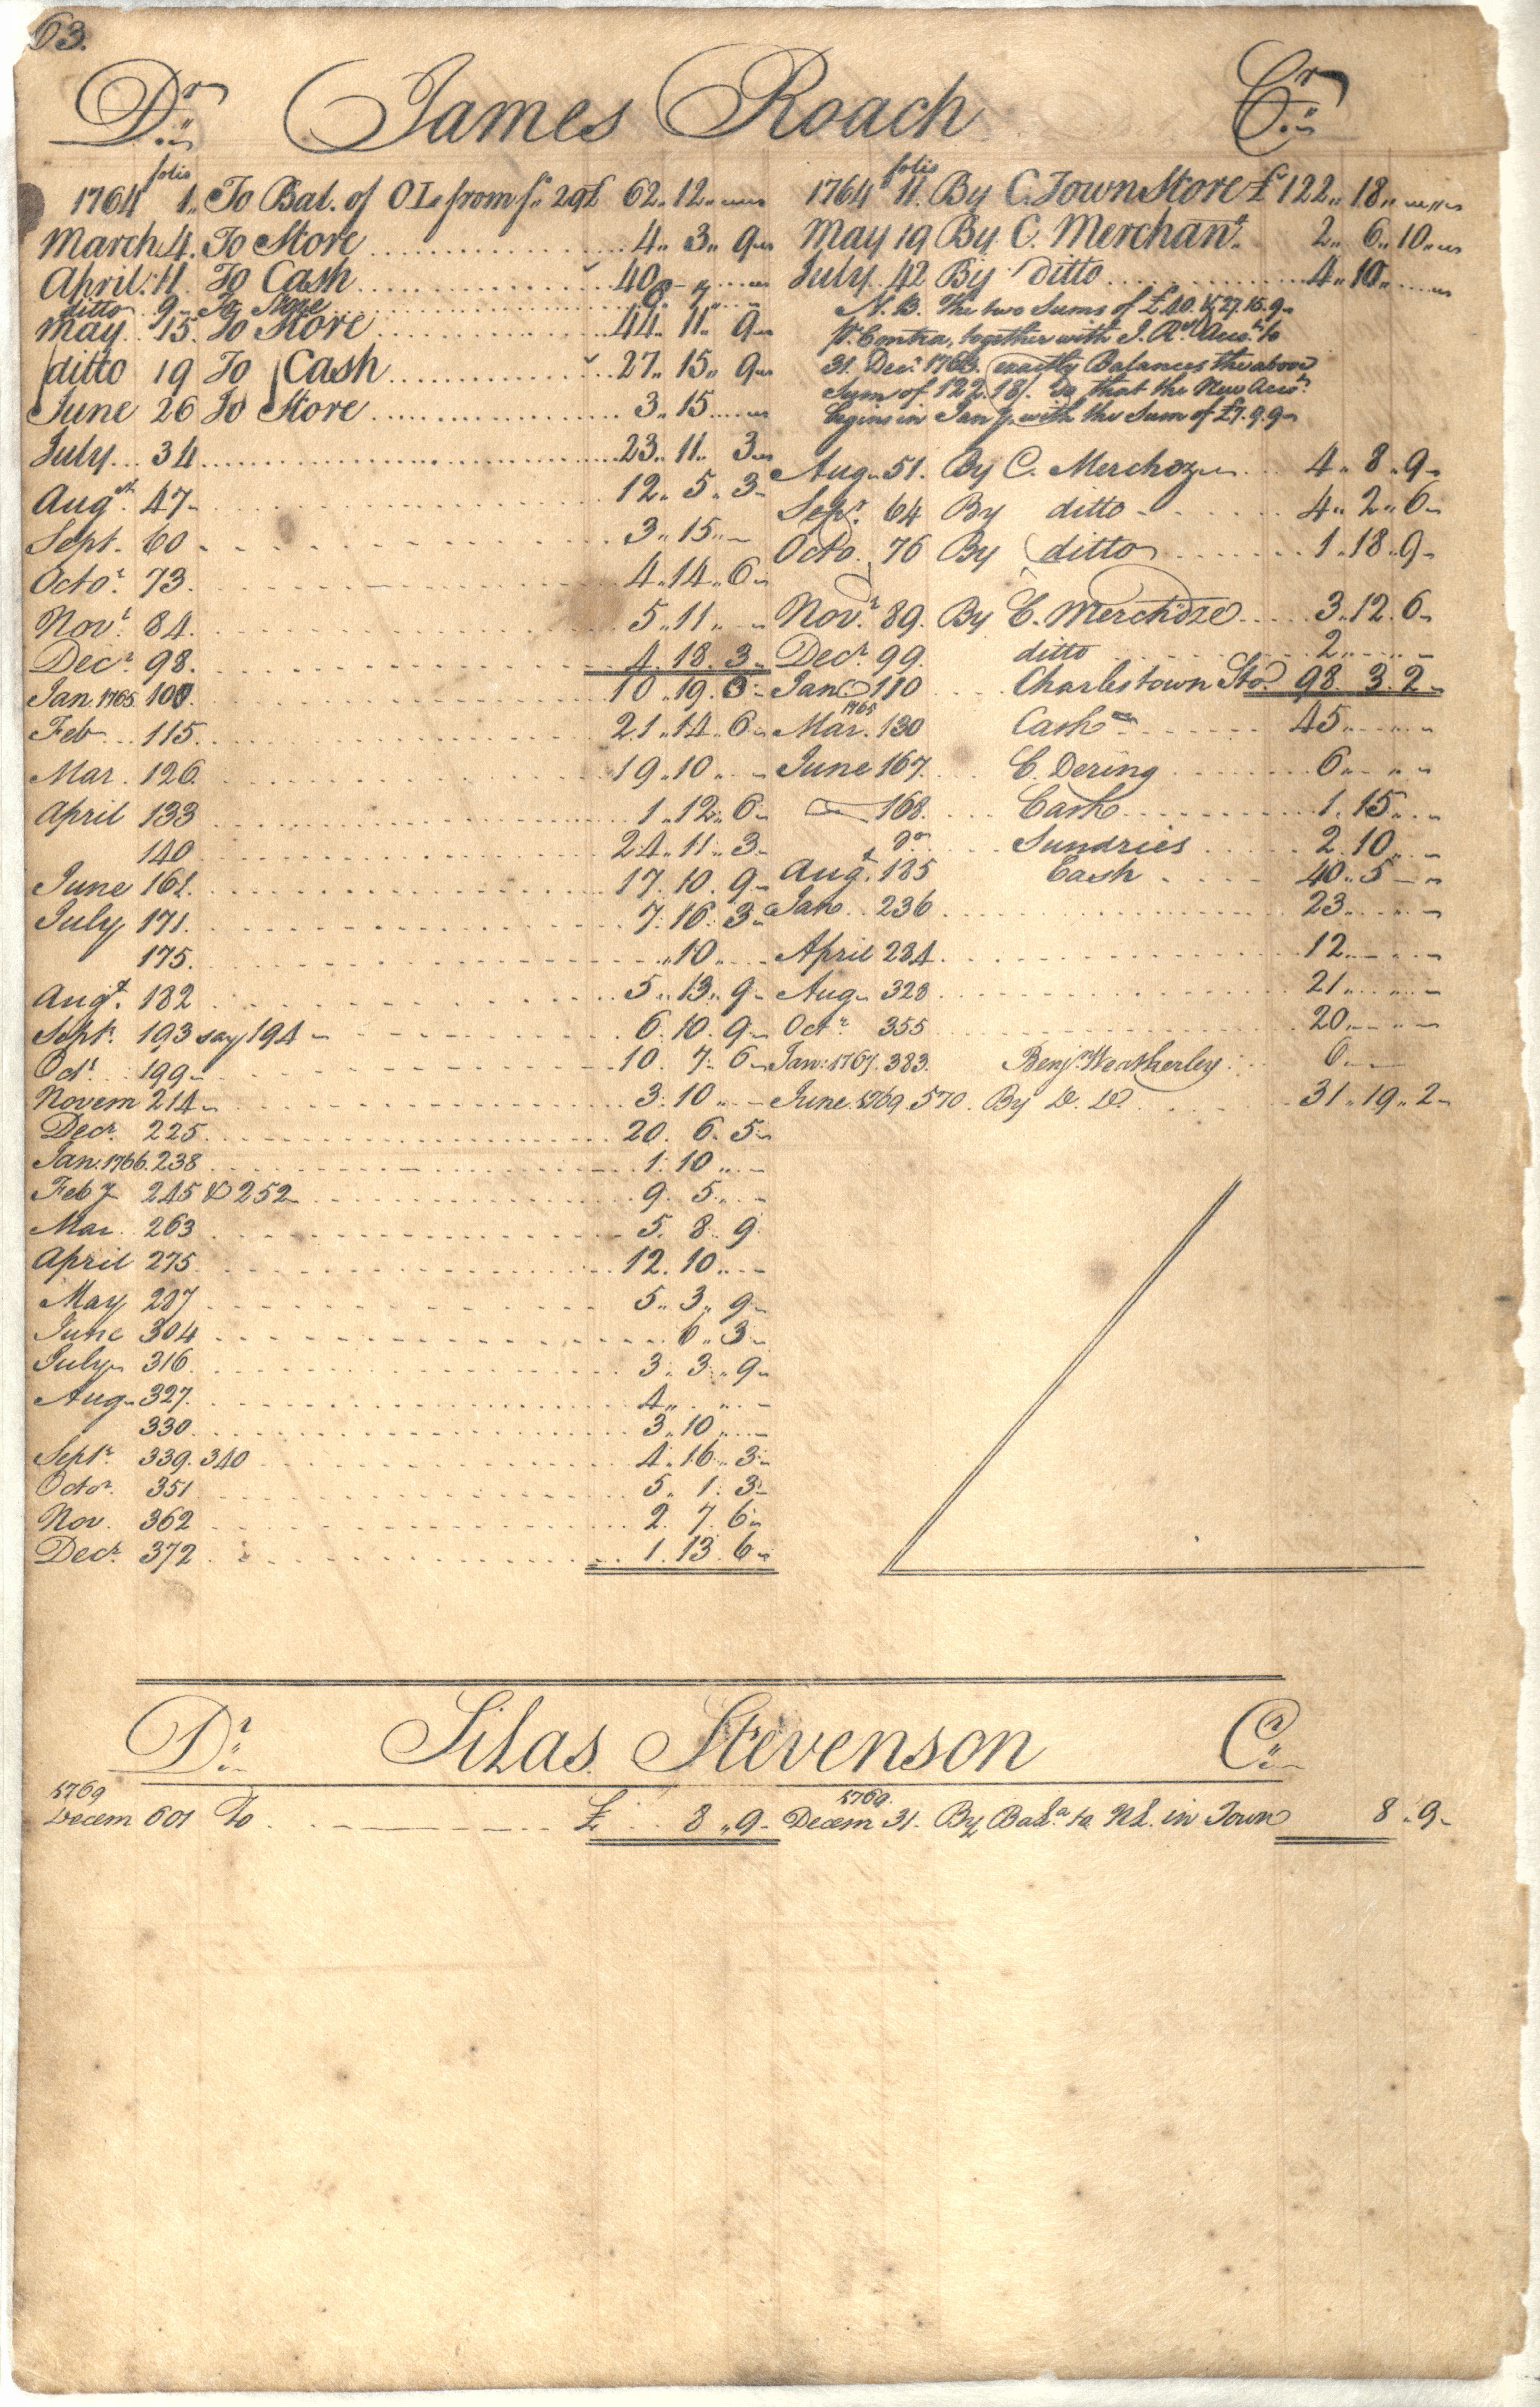 Plowden Weston's Business Ledger, page 63